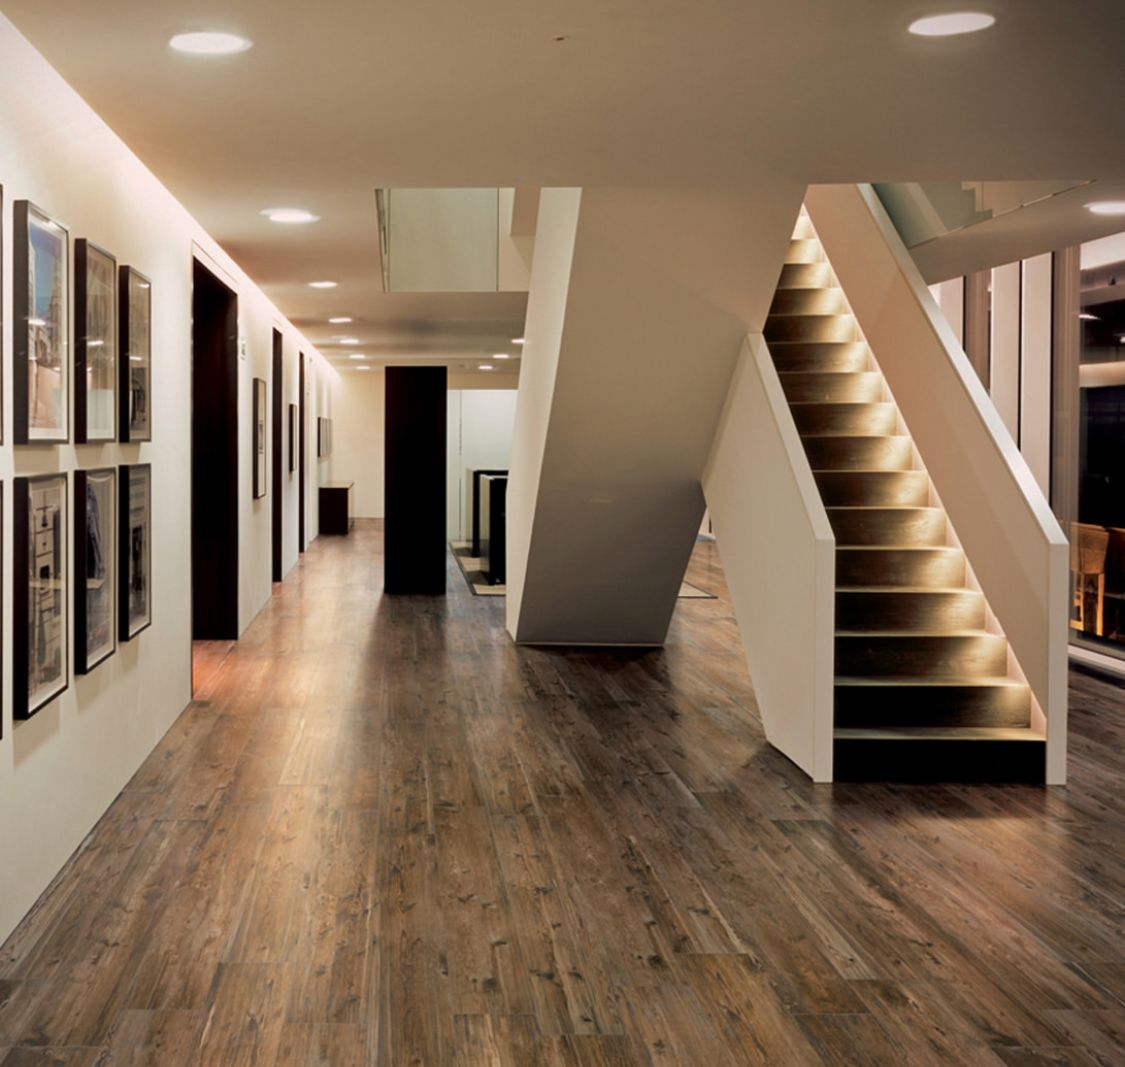 Best Pin By Karin Sharav Zalkind On 53 Stairs Wood Look Tile 400 x 300